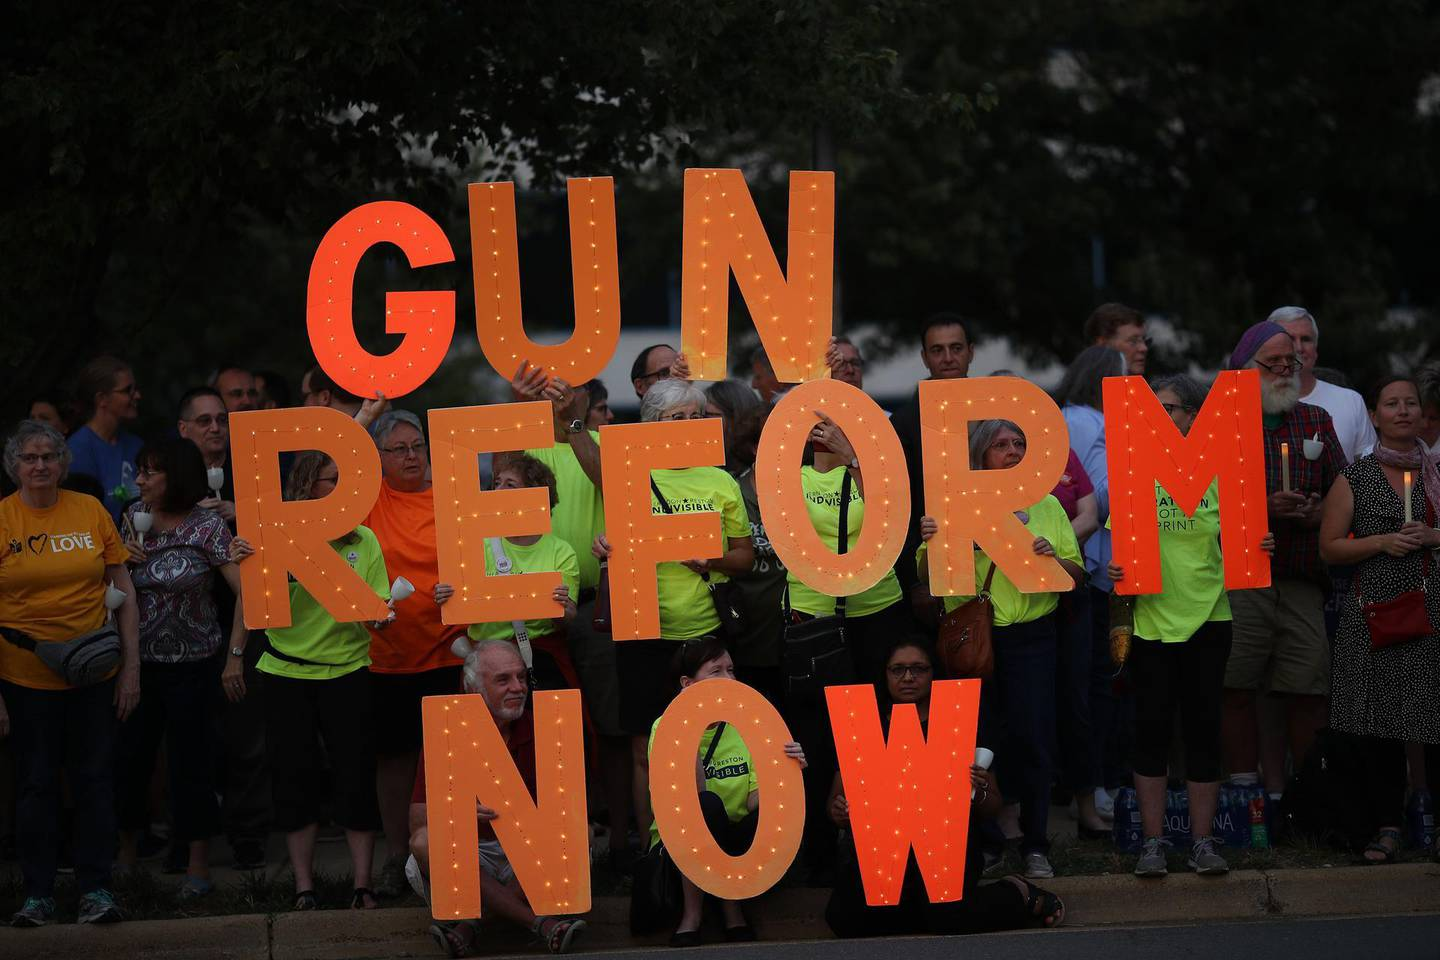 FAIRFAX, VIRGINIA - AUGUST 05: Advocates of gun reform legislation hold a candle light vigil for victims of recent mass shootings outside the headquarters of the National Rifle Association August 5, 2019 in Fairfax, Virginia. Thirty-one people have died following the two mass shootings over the weekend in El Paso, Texas and Dayton, Ohio.   Win McNamee/Getty Images/AFP == FOR NEWSPAPERS, INTERNET, TELCOS & TELEVISION USE ONLY ==